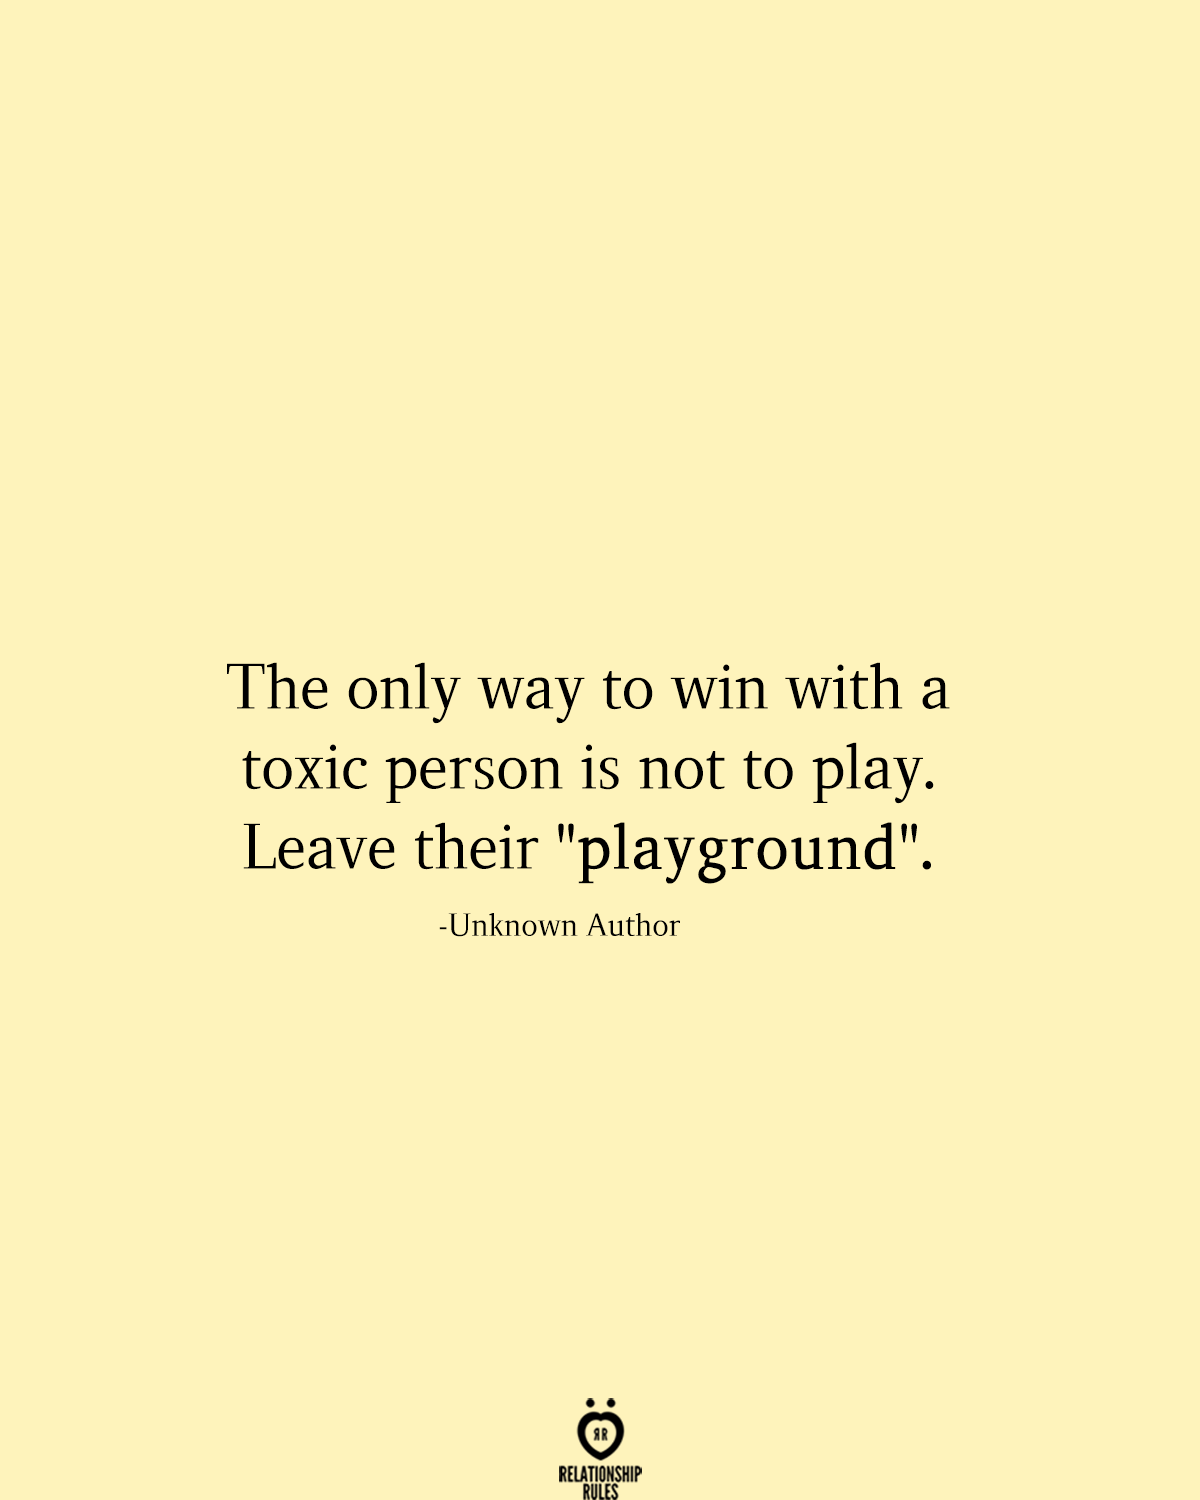 The Only Way To Win With A Toxic Person Is Not To Play Toxic Quotes Toxic Friendships Quotes Toxic People Quotes